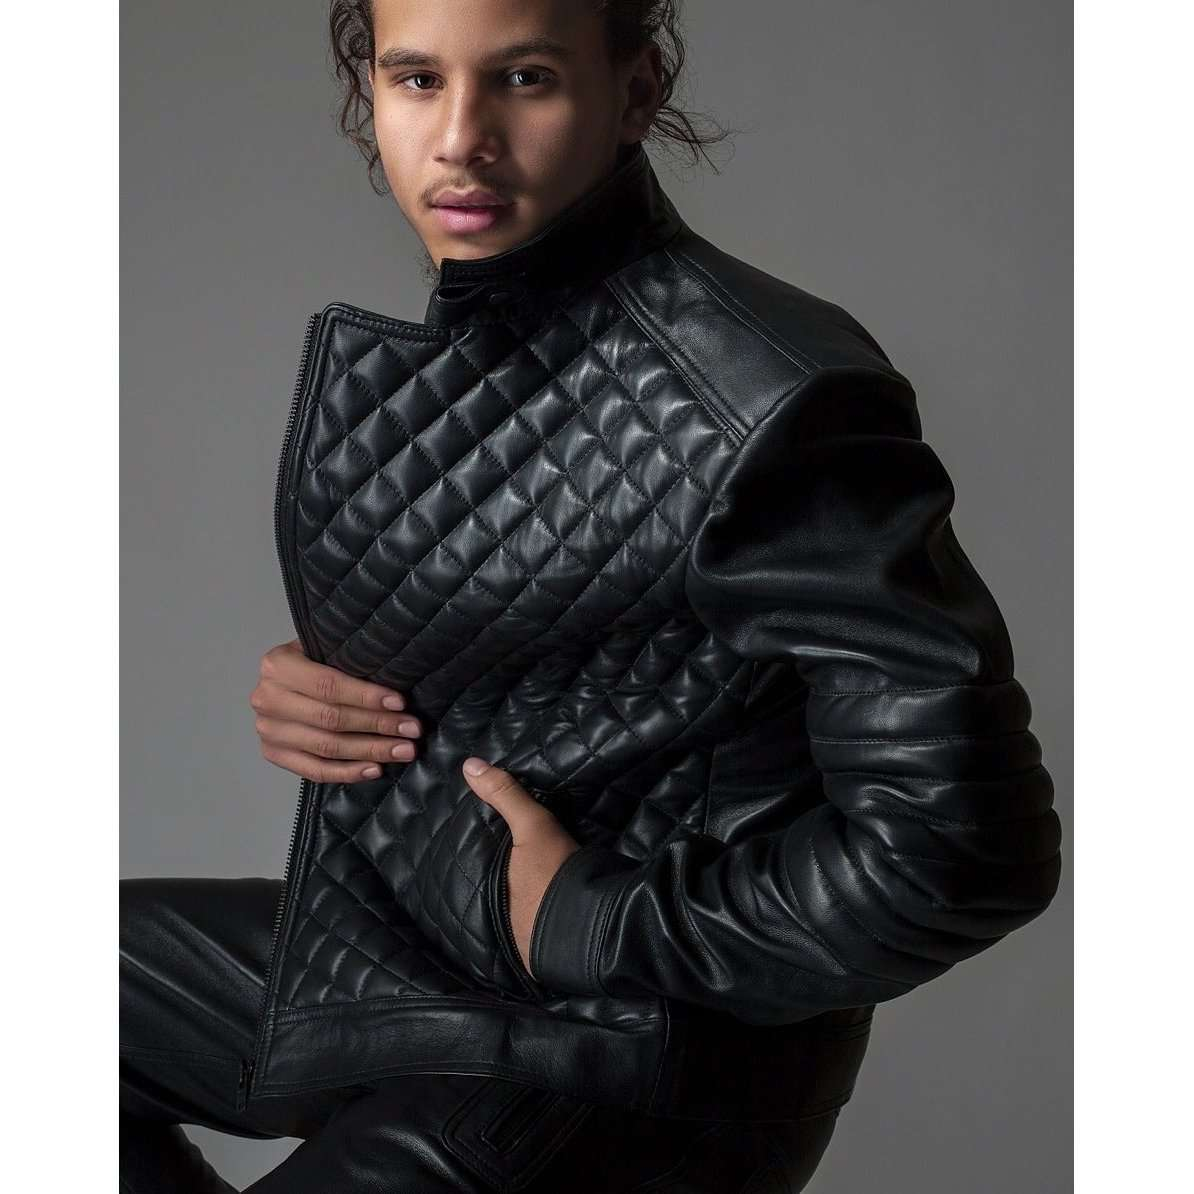 Rehbar Futuristic Quilted Leather Jacket Rafz The Hides